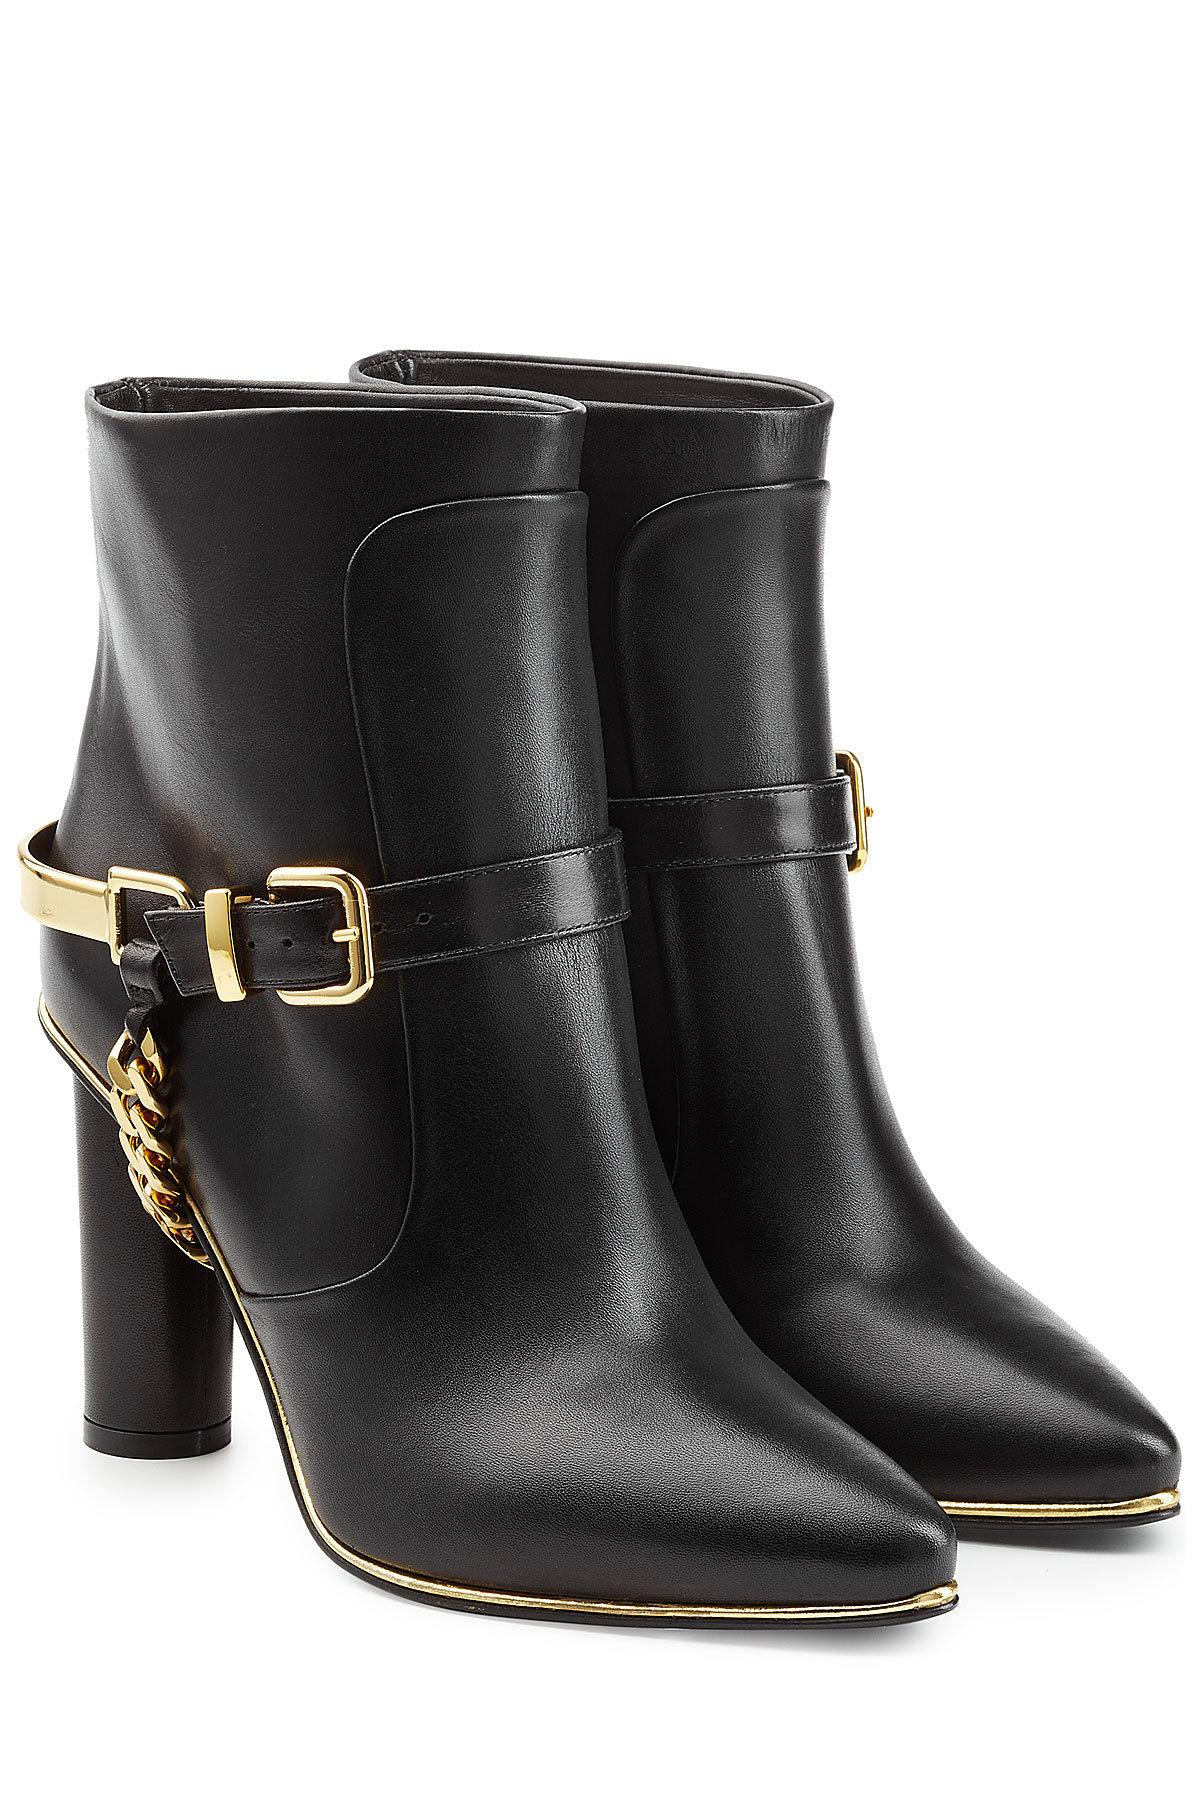 chain-embellished boots - Black Balmain